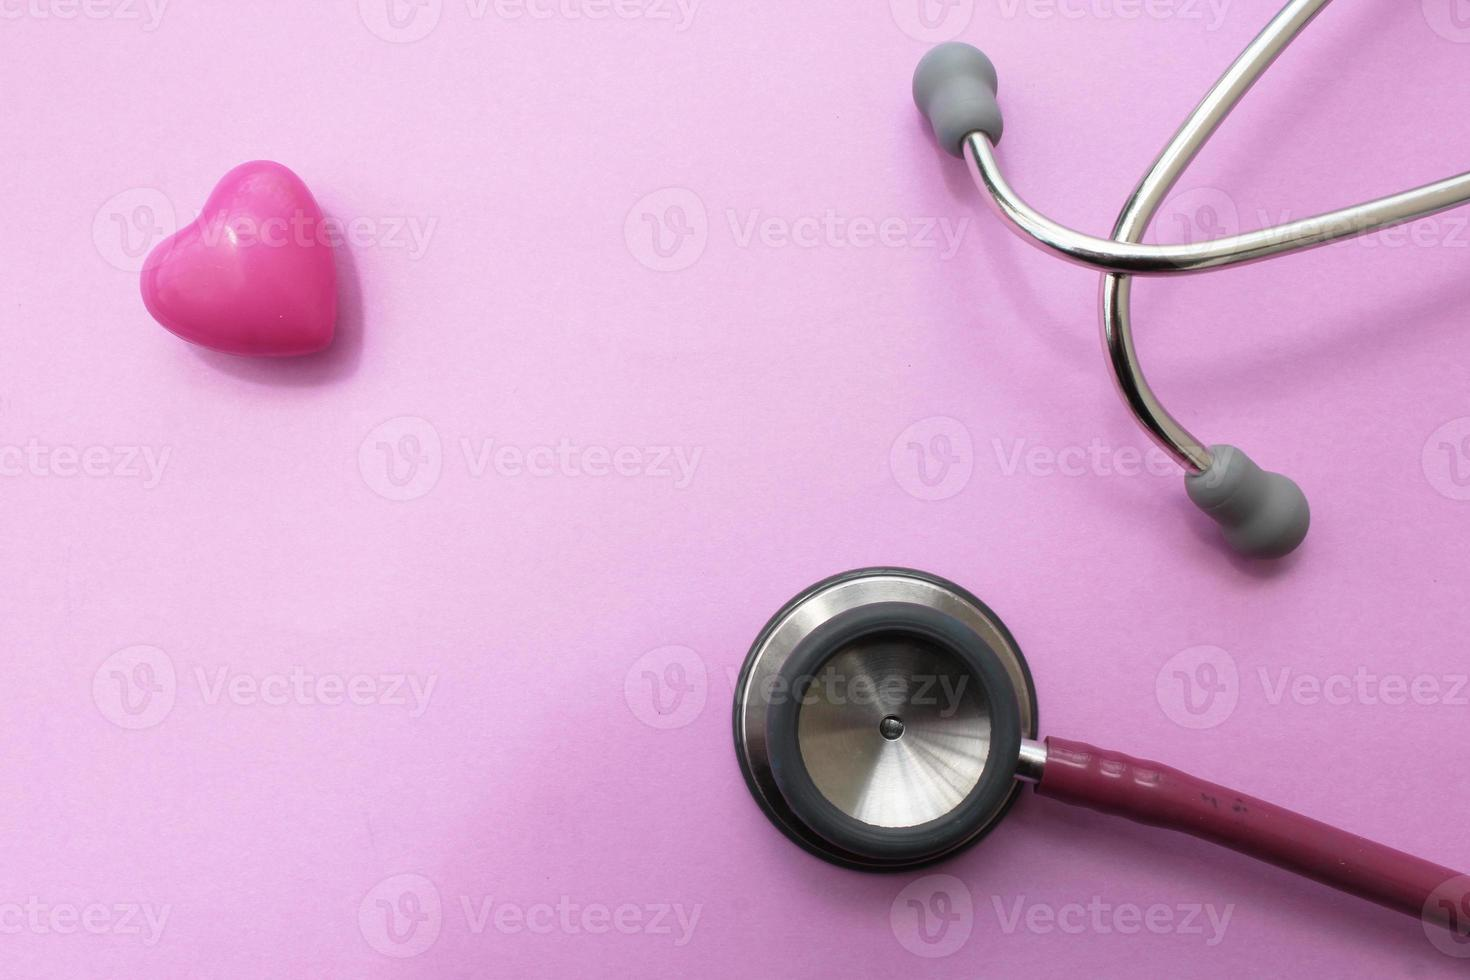 Stethoscope and heart photo